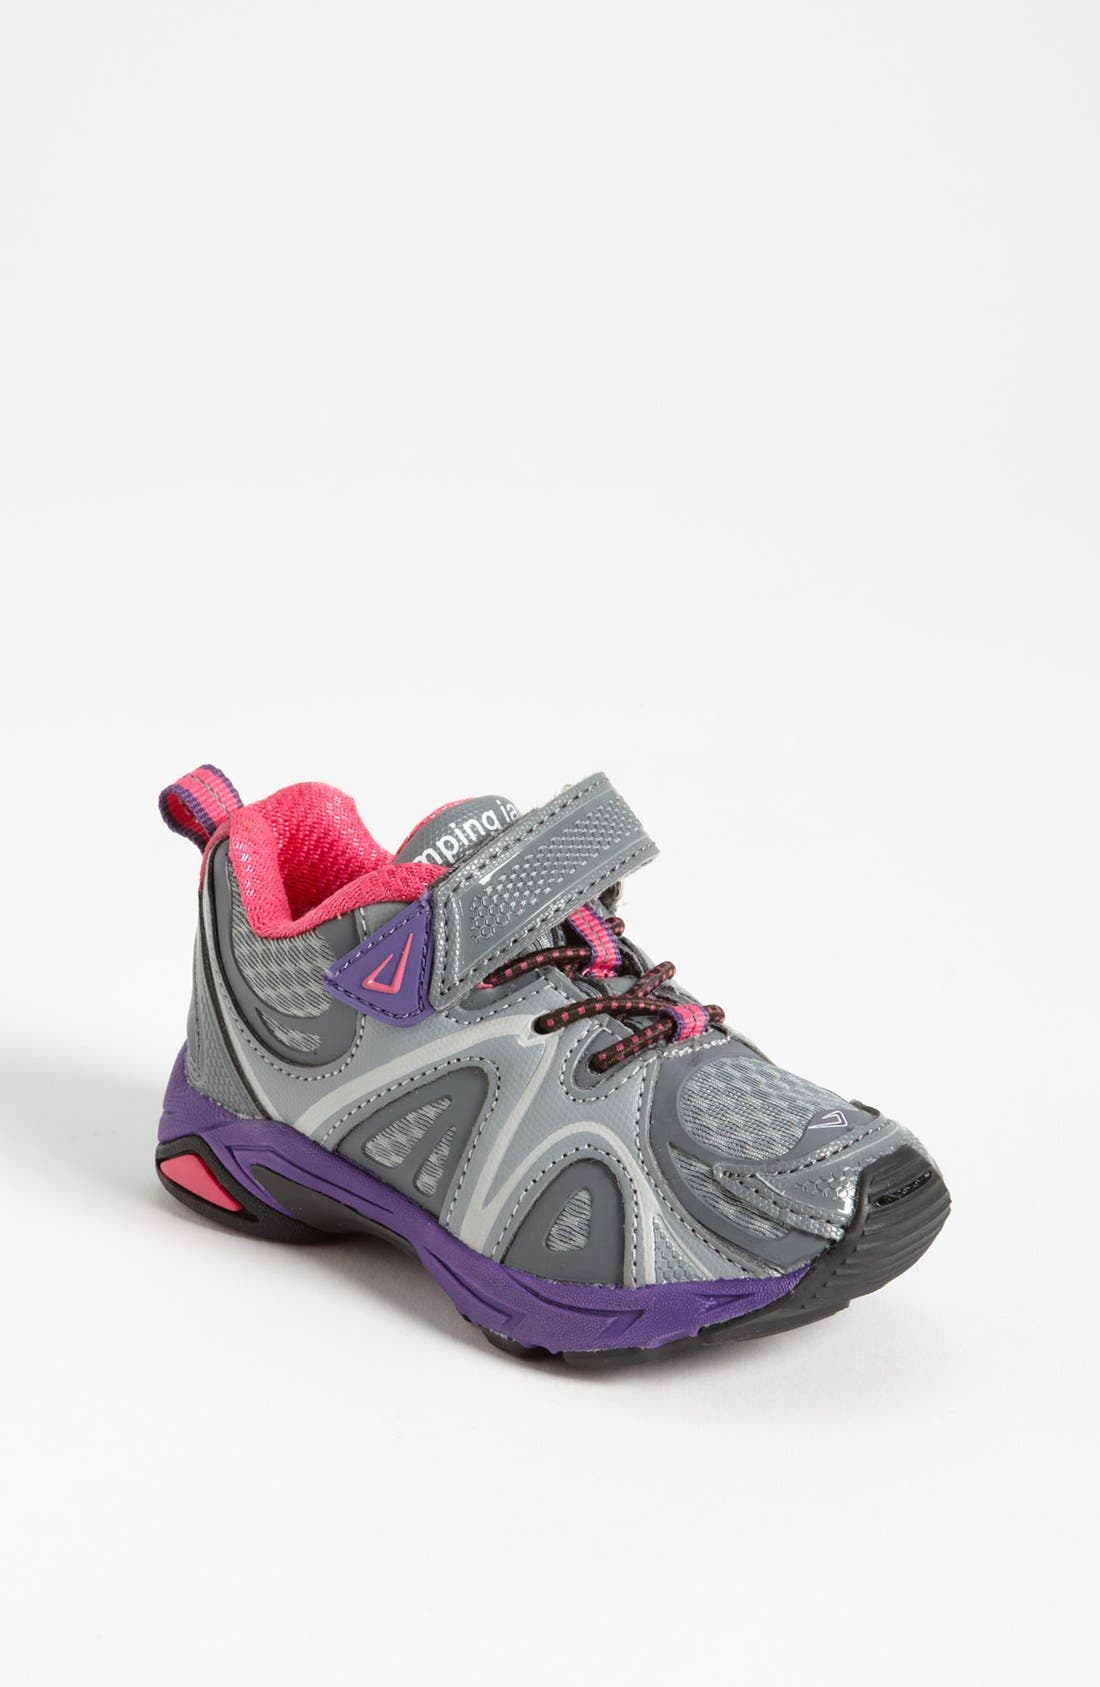 Alternate Image 1 Selected - Jumping Jacks 'Titan' Sneaker (Walker, Toddler, Little Kid & Big Kid)